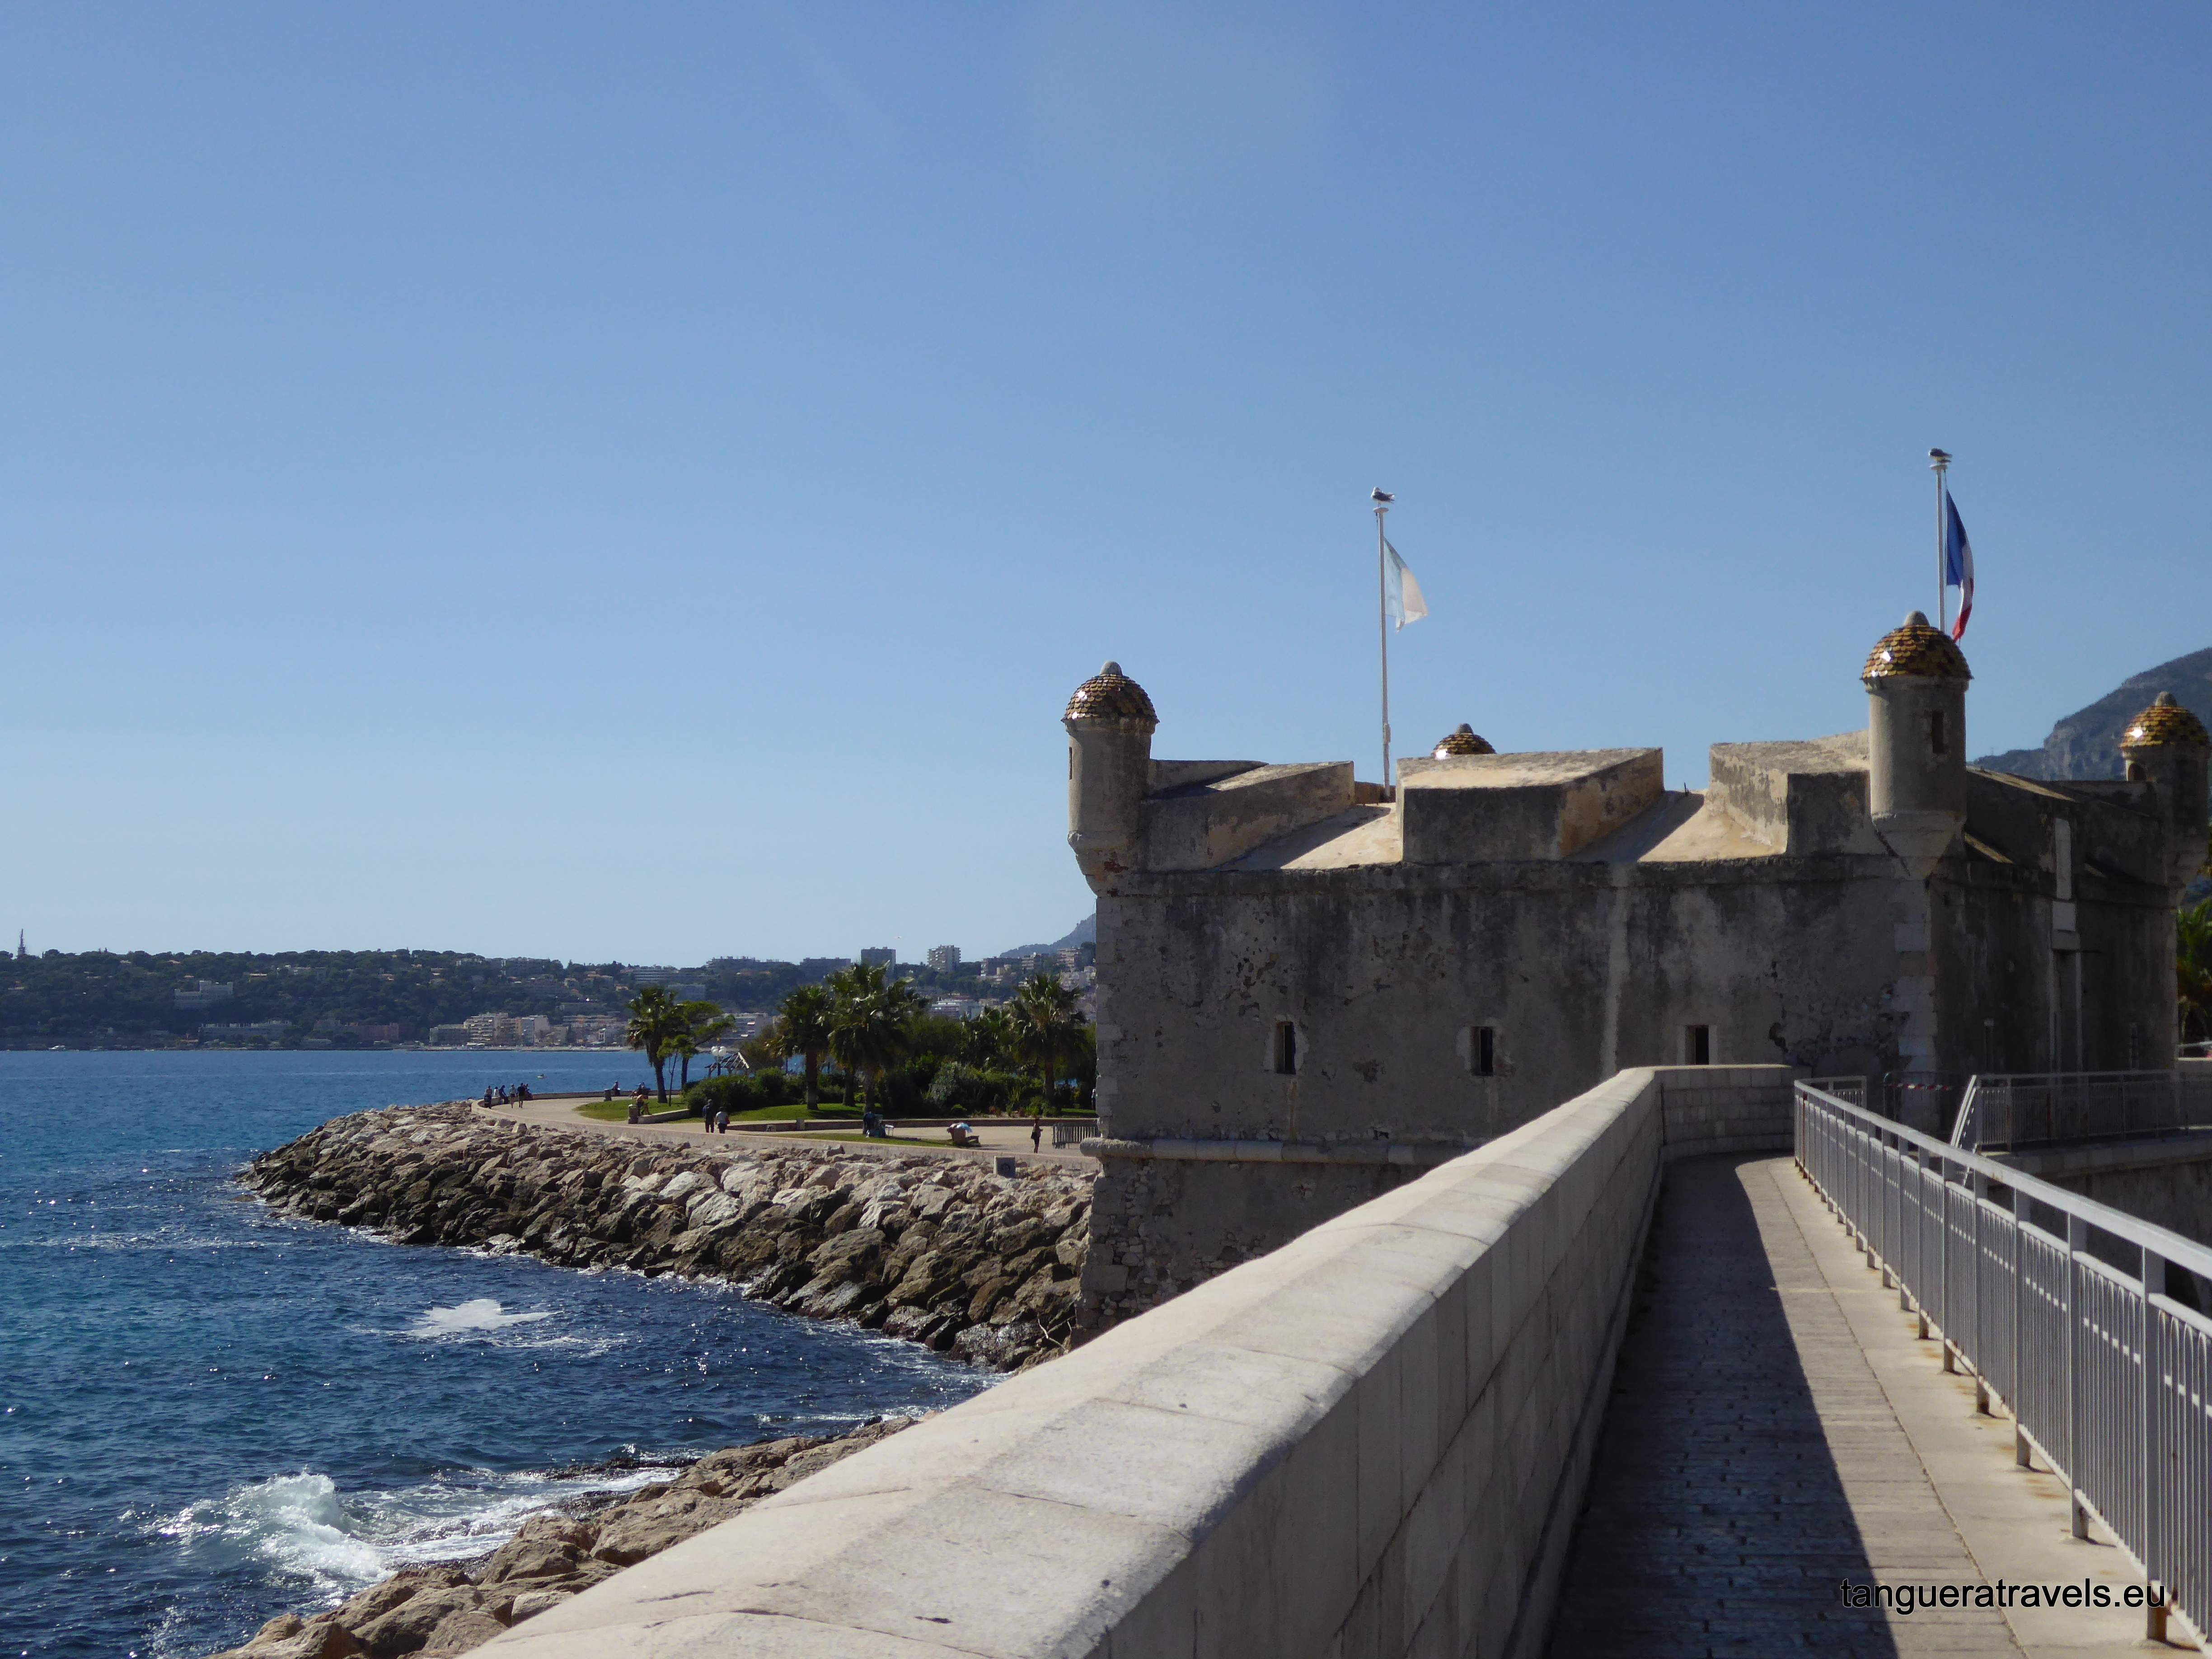 View of Musee du Bastion from the fortifications